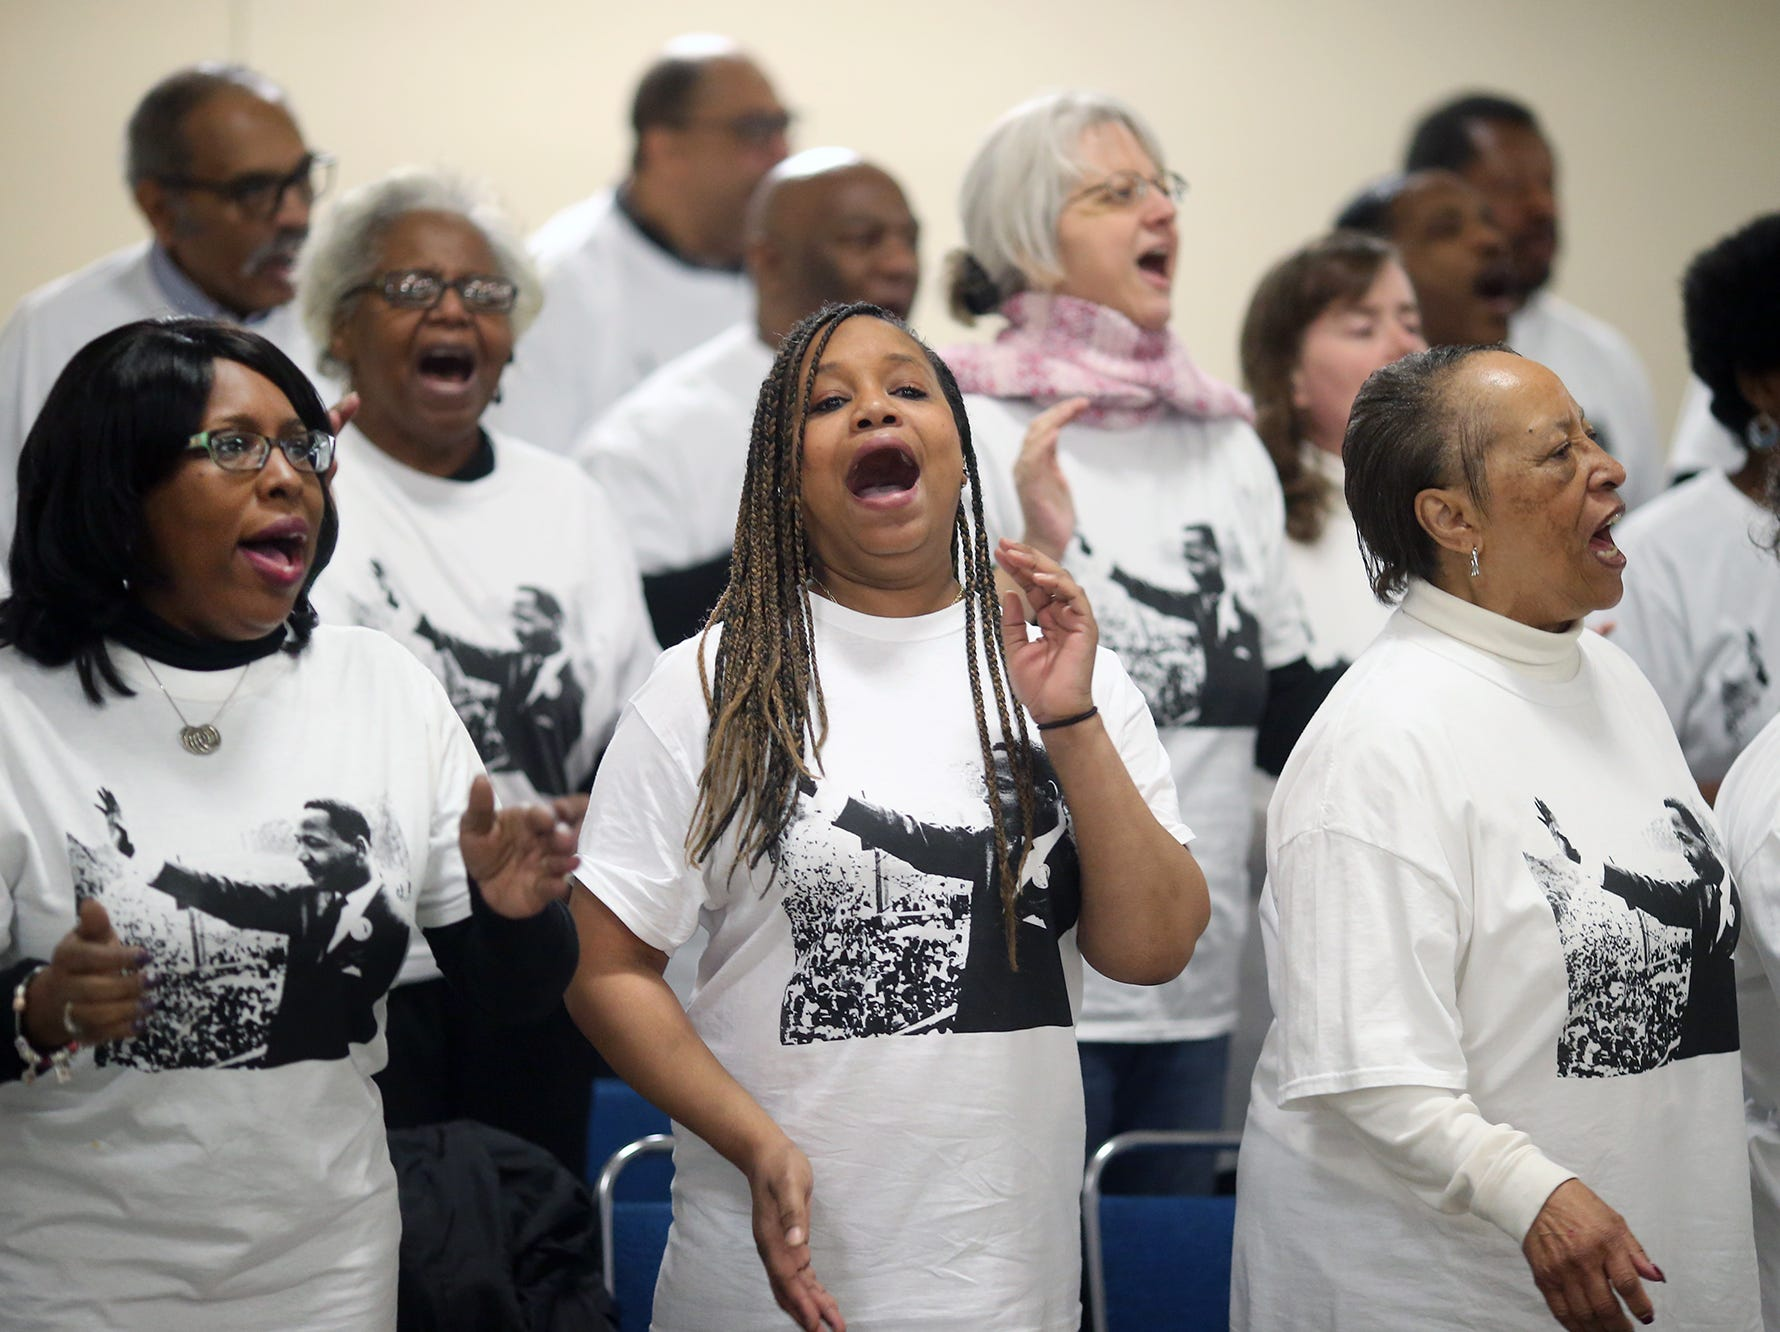 The MLK Community Choir  performs at the 25th annual Reverend Dr. Martin Luther King, Jr. celebration was held at PresidentsÕ Hall at the Kitsap County Fairgrounds on Monday, January, 21 , 2019.